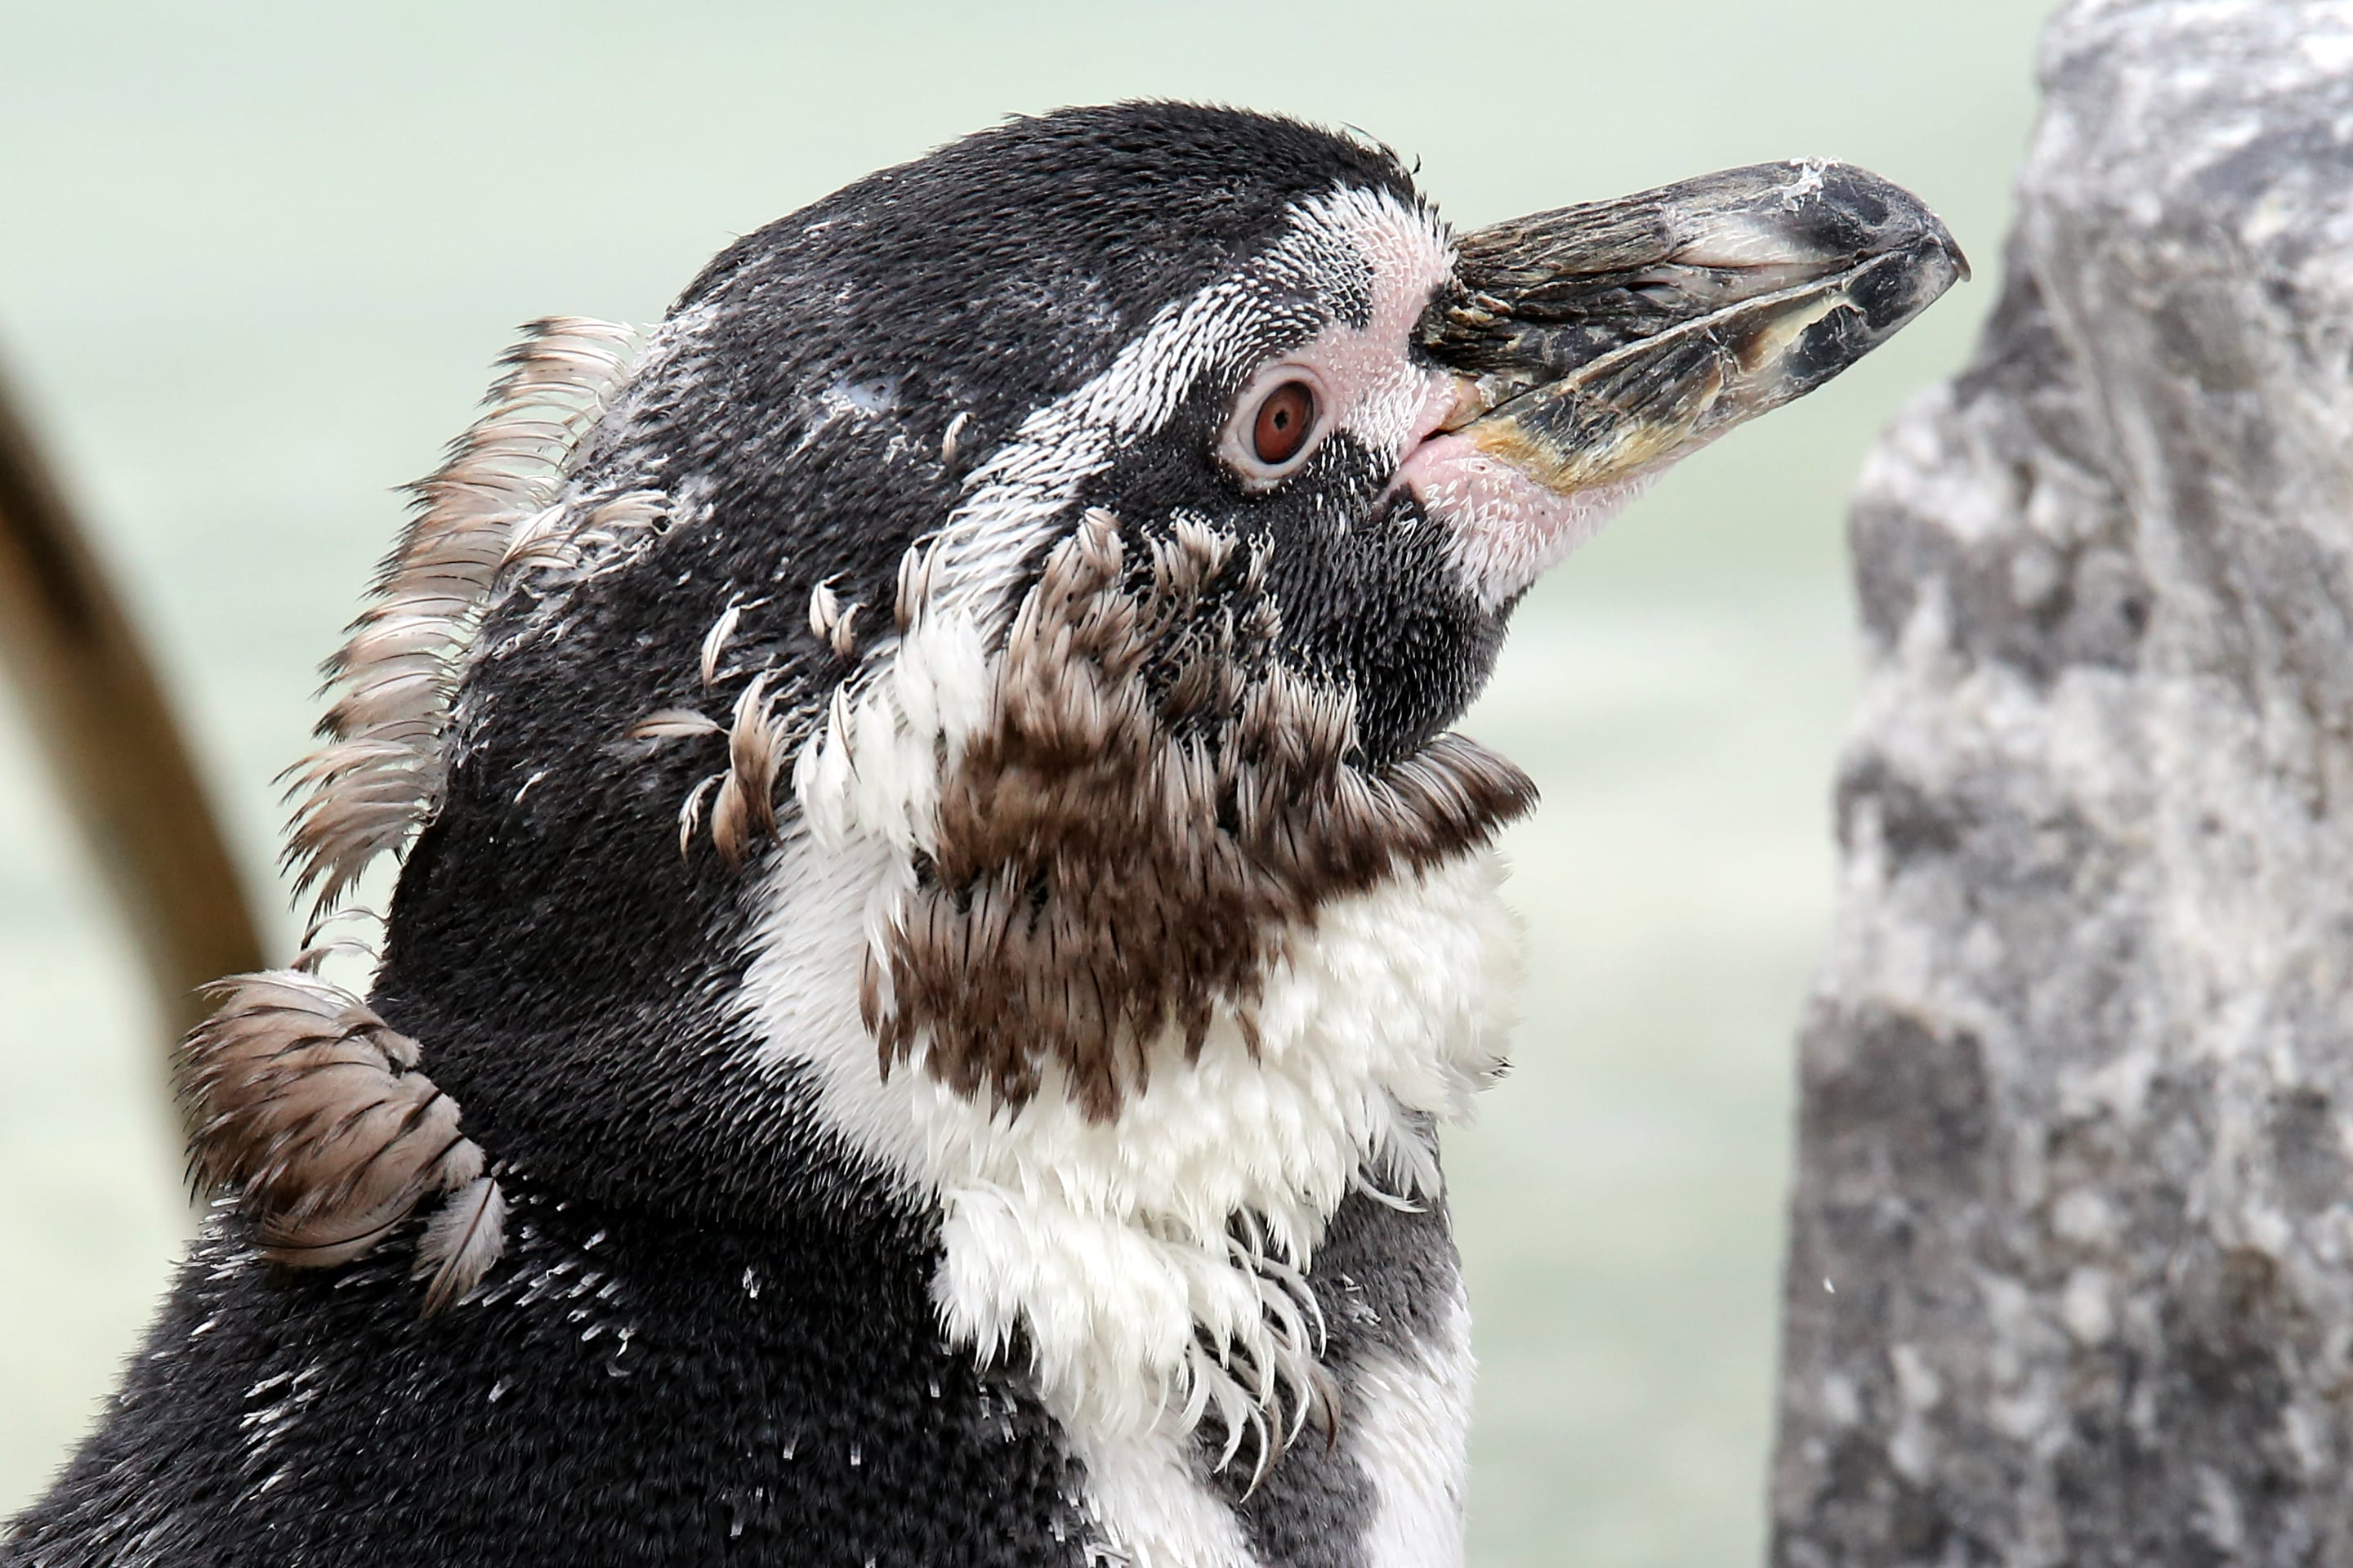 moulting penguin at folly farm